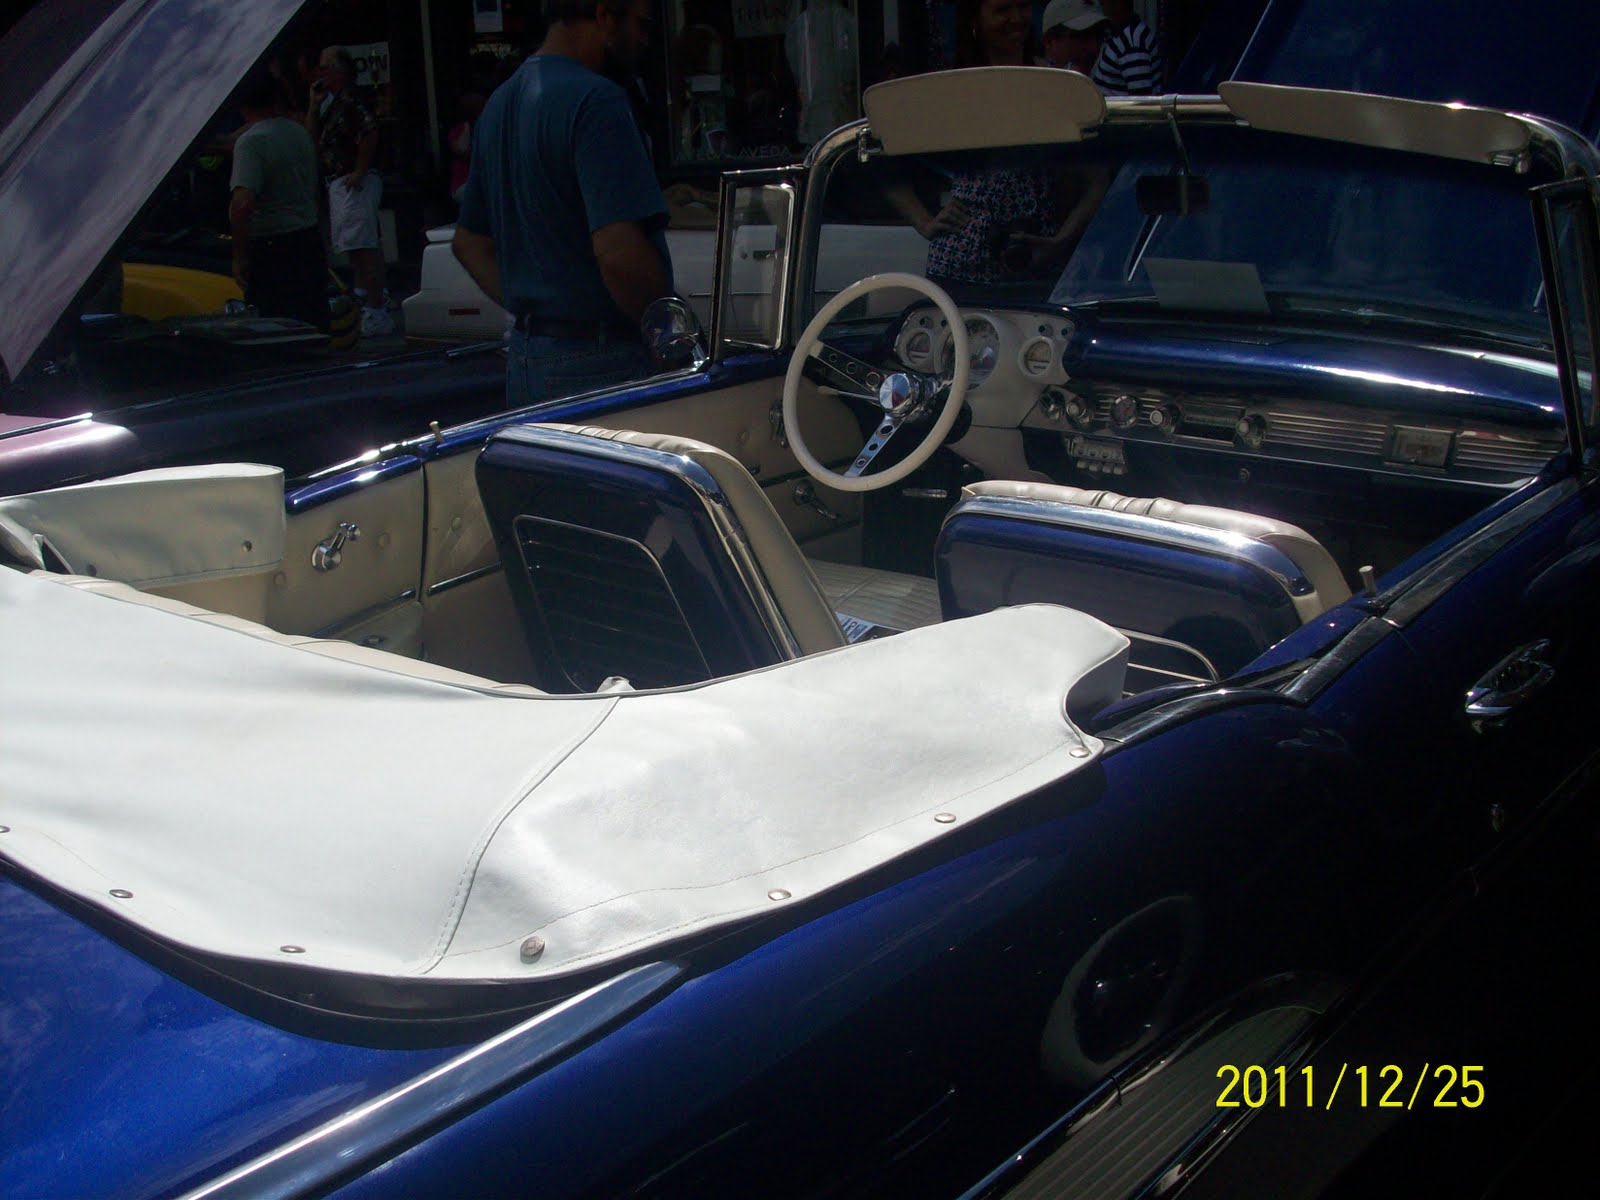 Jillysplace sawyer motors car show in saugerties ny july for Sawyer motors used cars